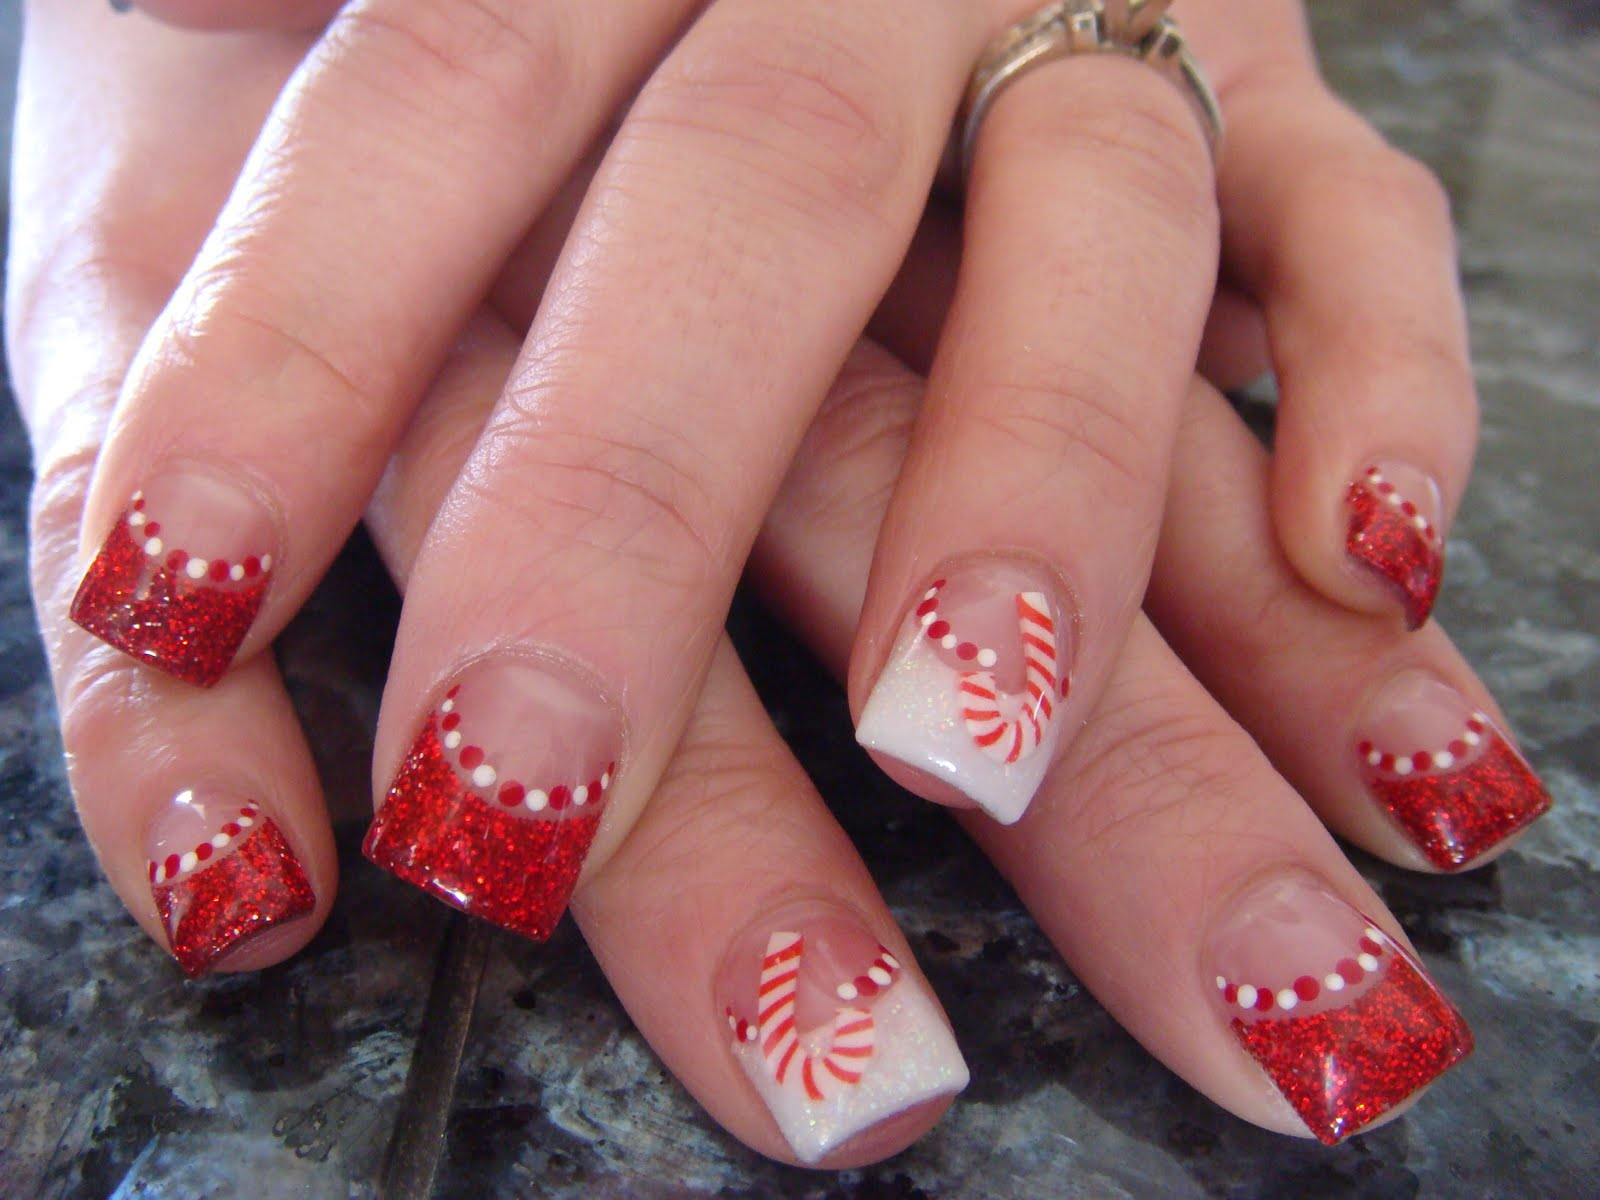 candy cane nails acrylic nails acrylic. Black Bedroom Furniture Sets. Home Design Ideas